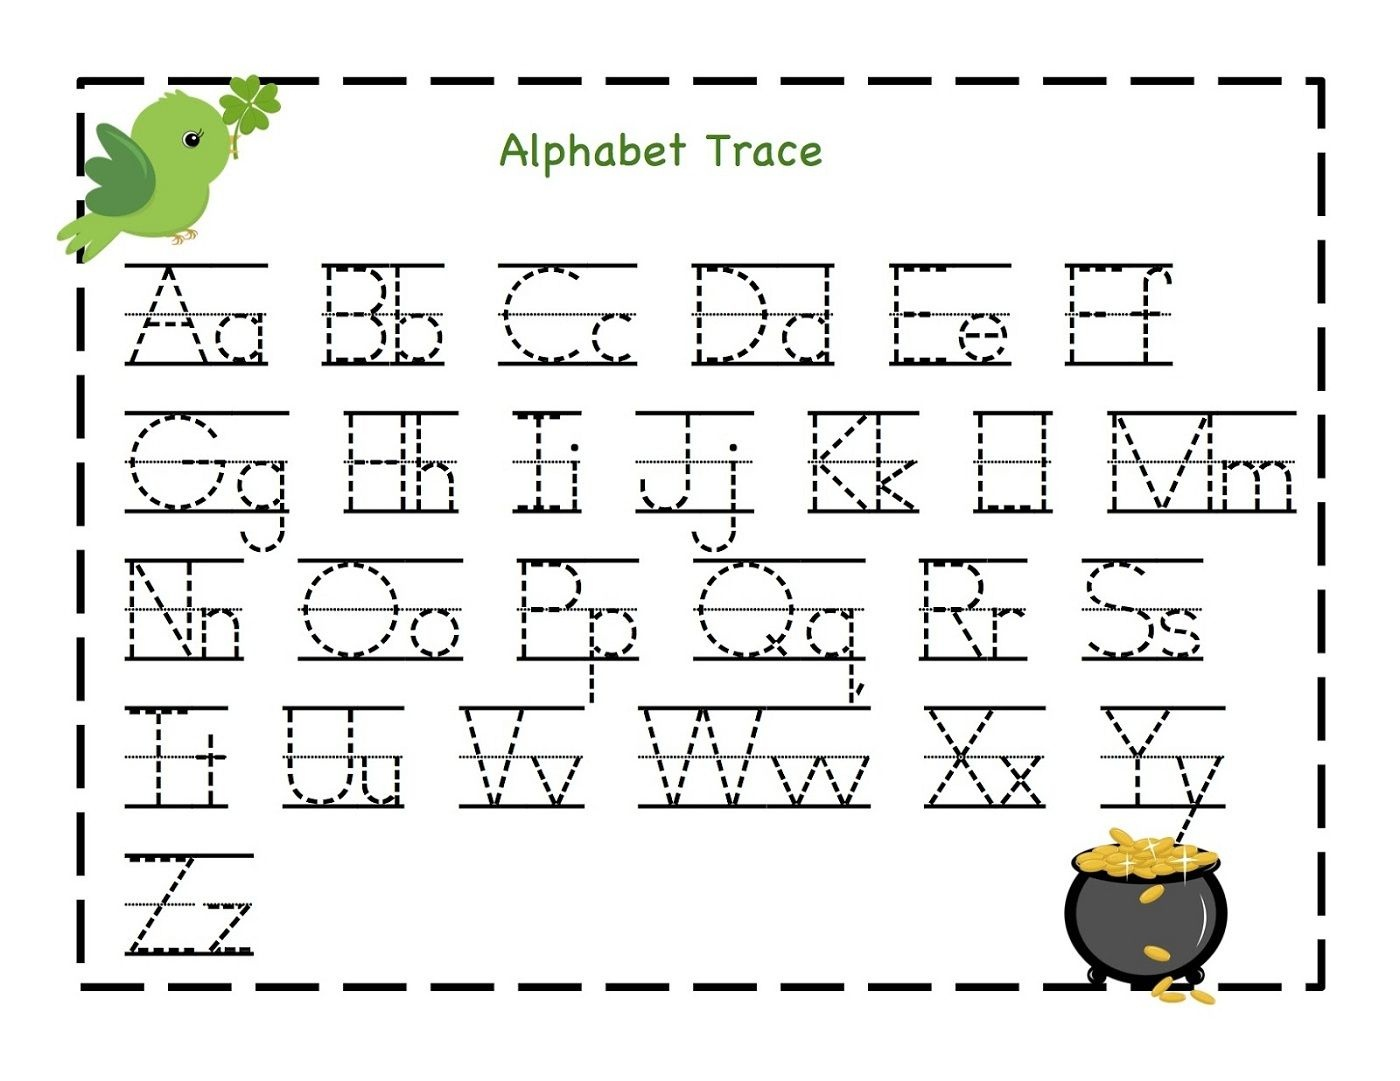 Traceable Letter Worksheets To Print | Schoolwork For Taj And Bre - Free Printable Tracing Letters And Numbers Worksheets